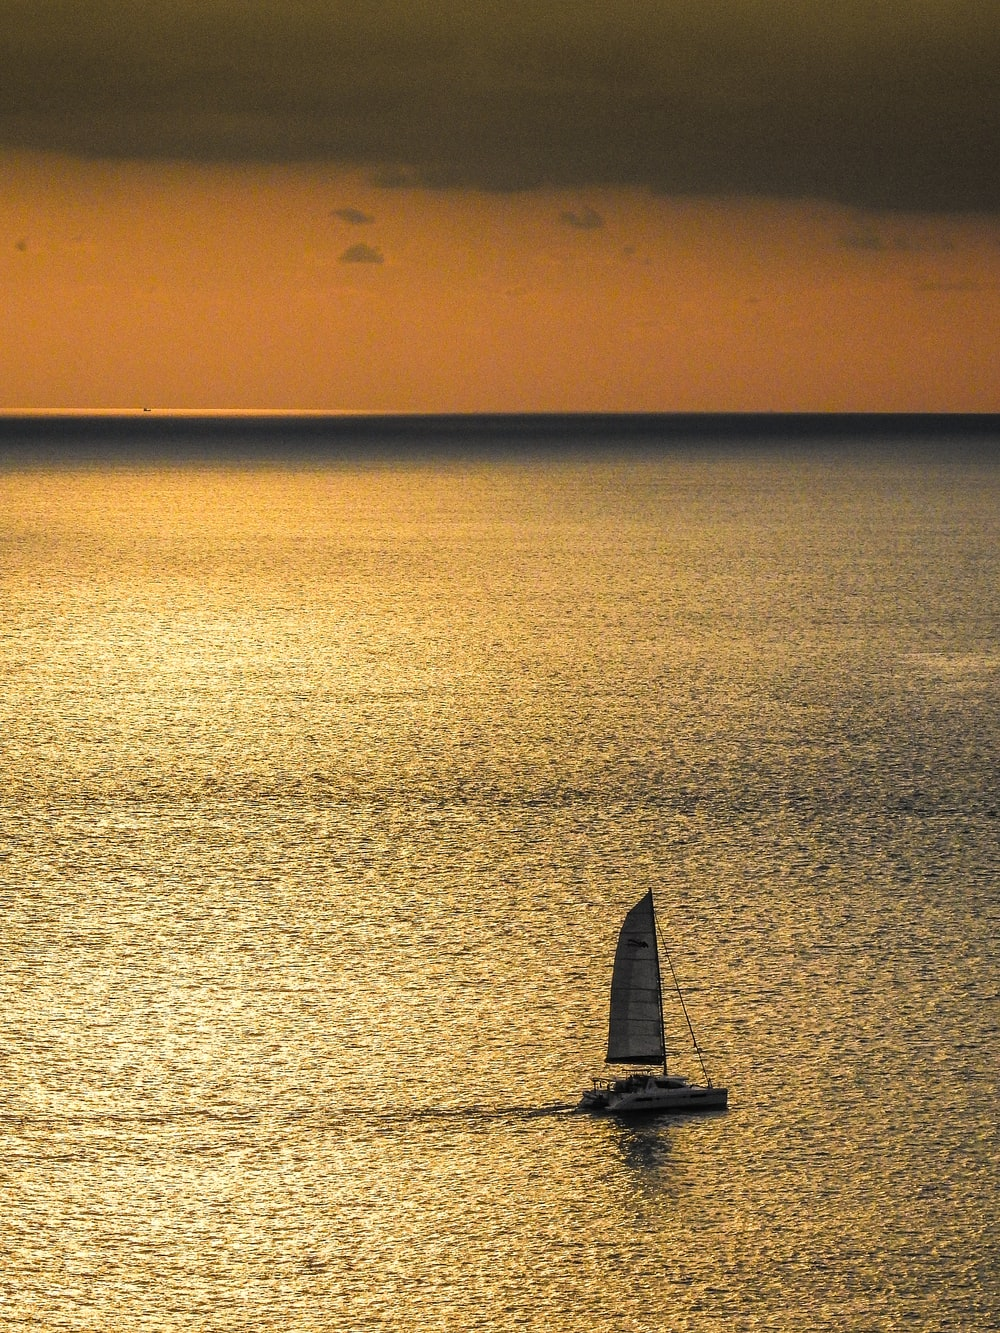 sailboat on body of water